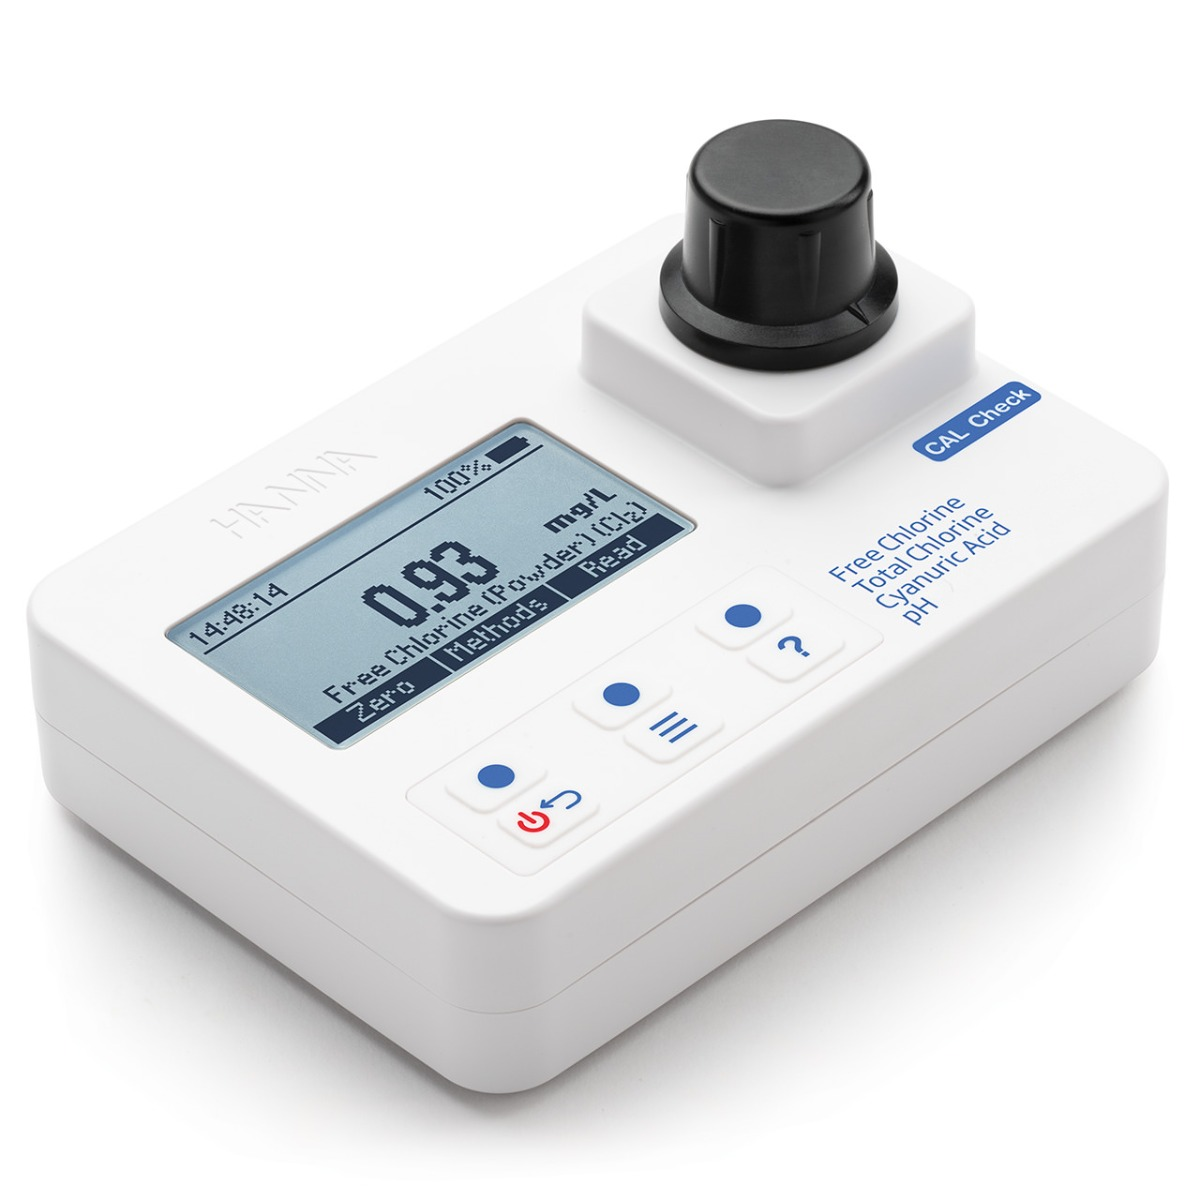 Chlorine Cyanuric Acid and pH Portable Photometer with CAL Check – HI97725